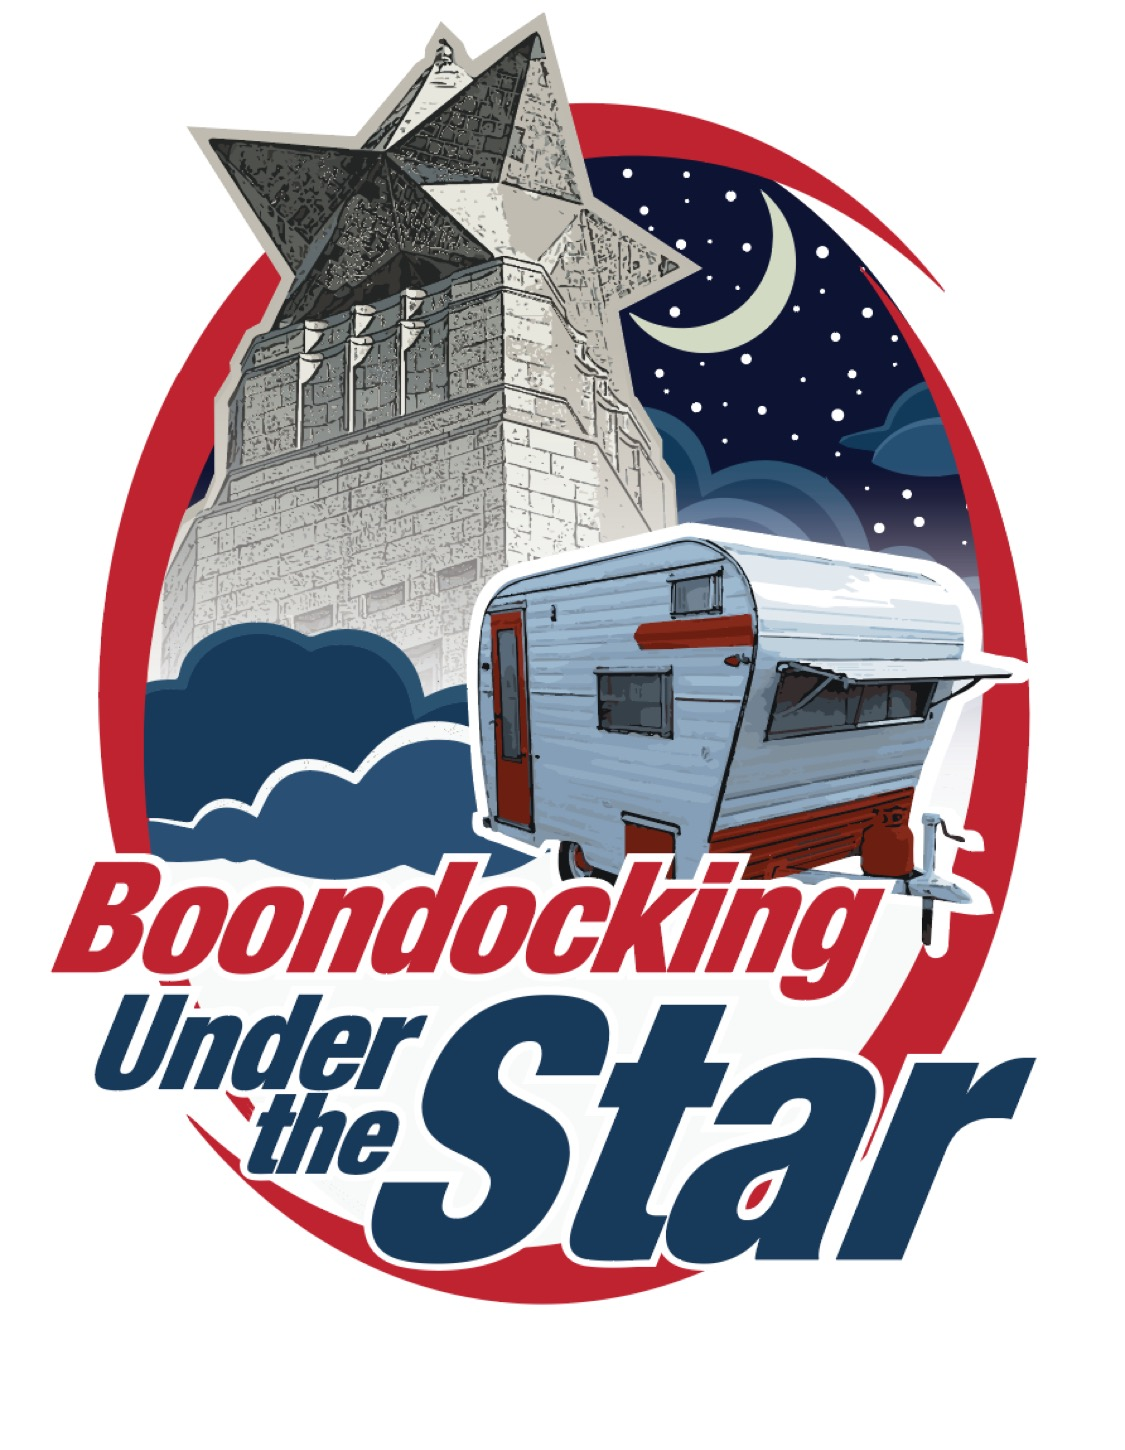 A logo showing a camper parked in front of the star from the top of the San Jacinto Monument, with a sickle moon and stars in the sky.